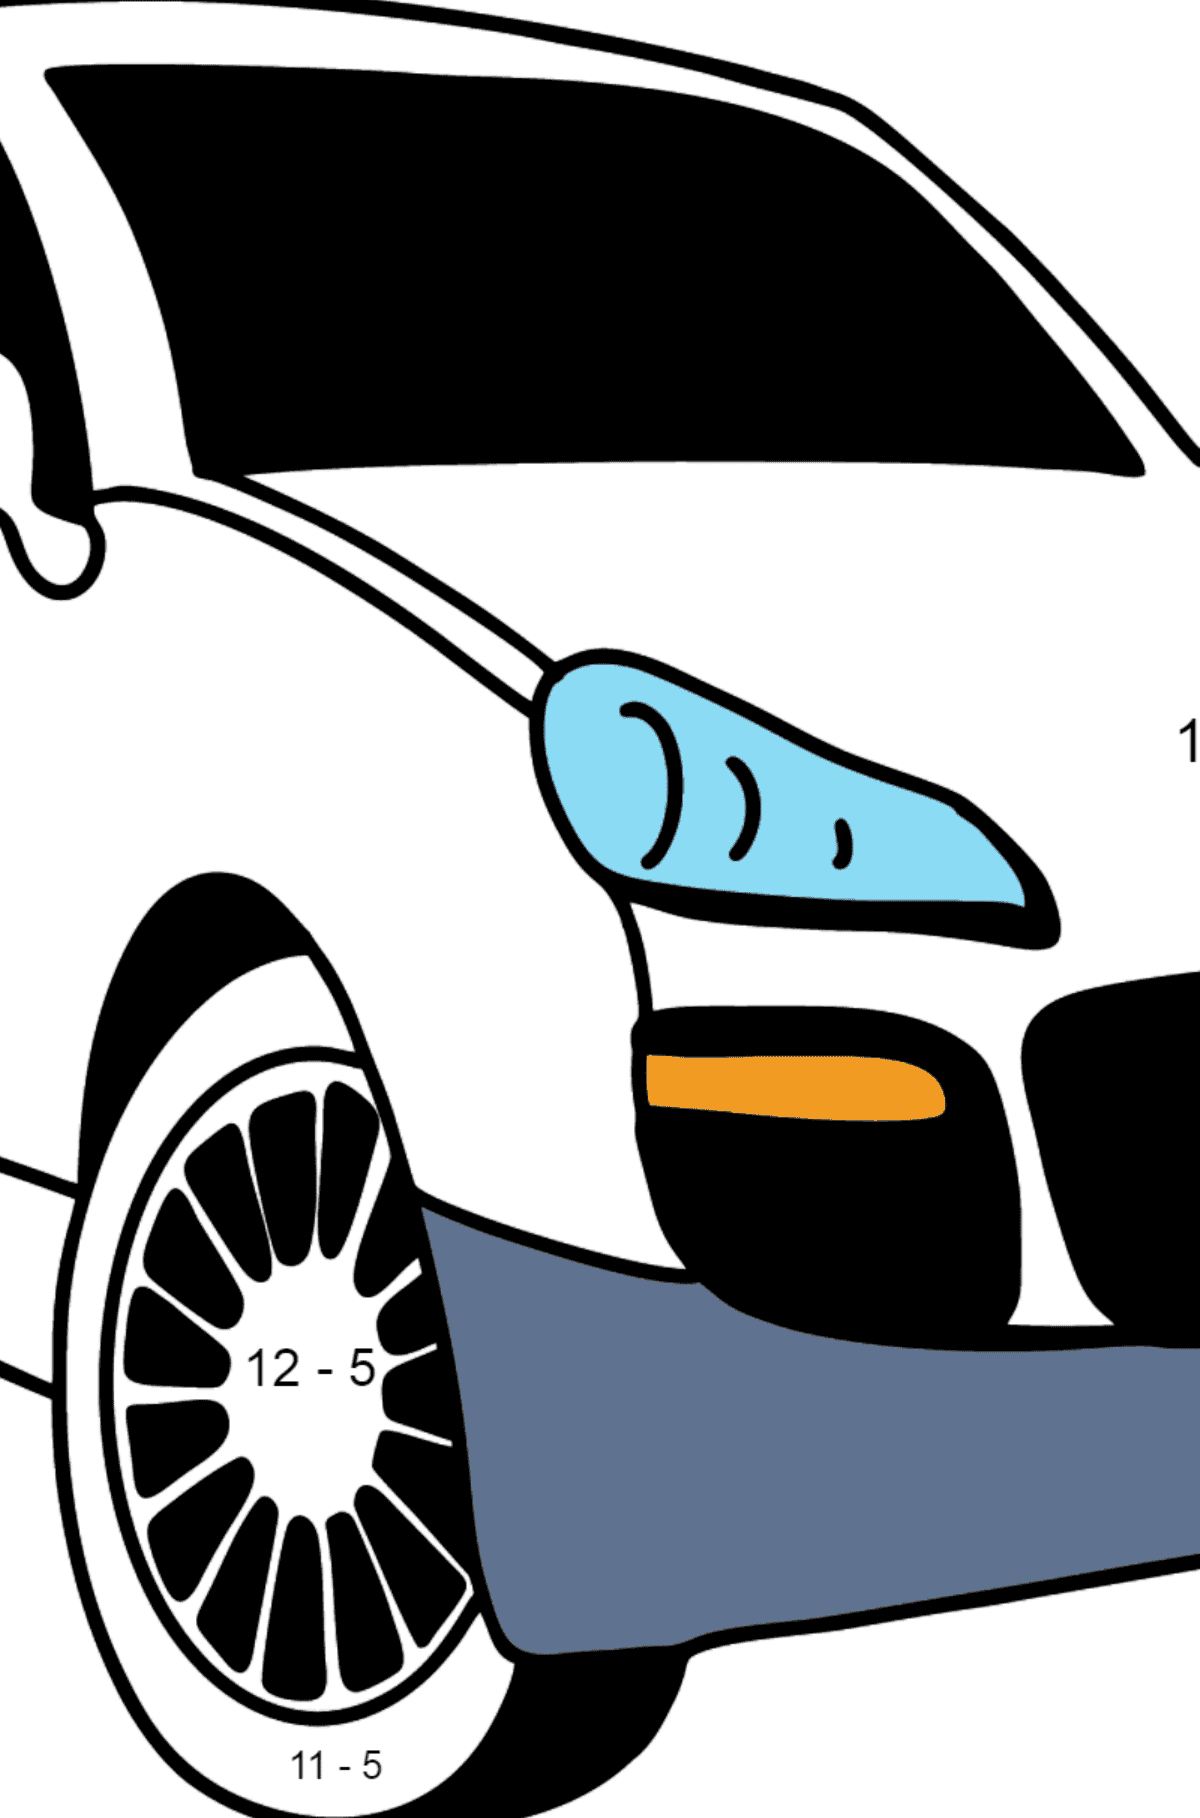 Porsche Cayenne Crossover coloring page - Math Coloring - Subtraction for Kids